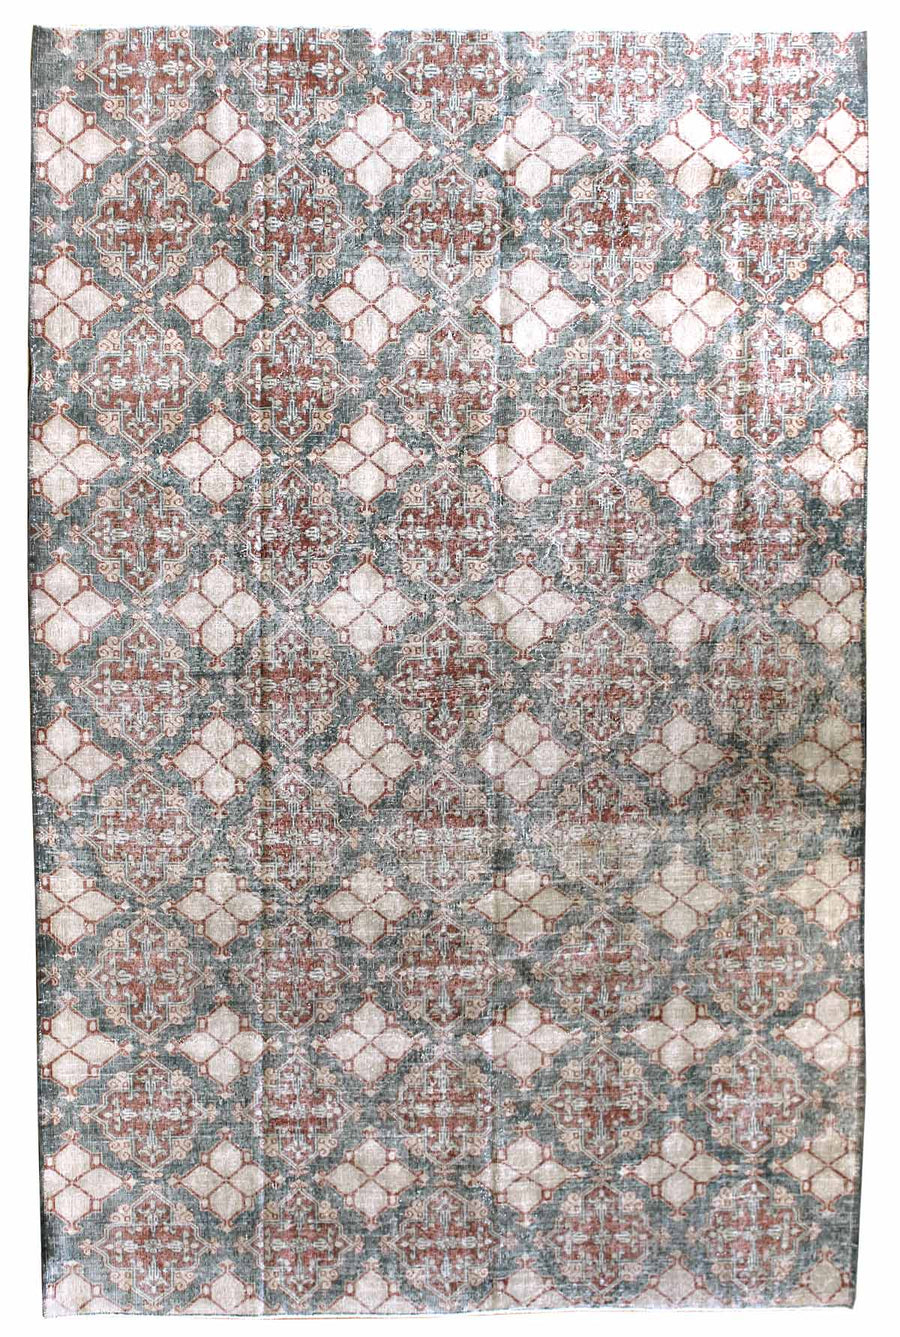 SPANISH HANDKNOTTED RUG, J45865